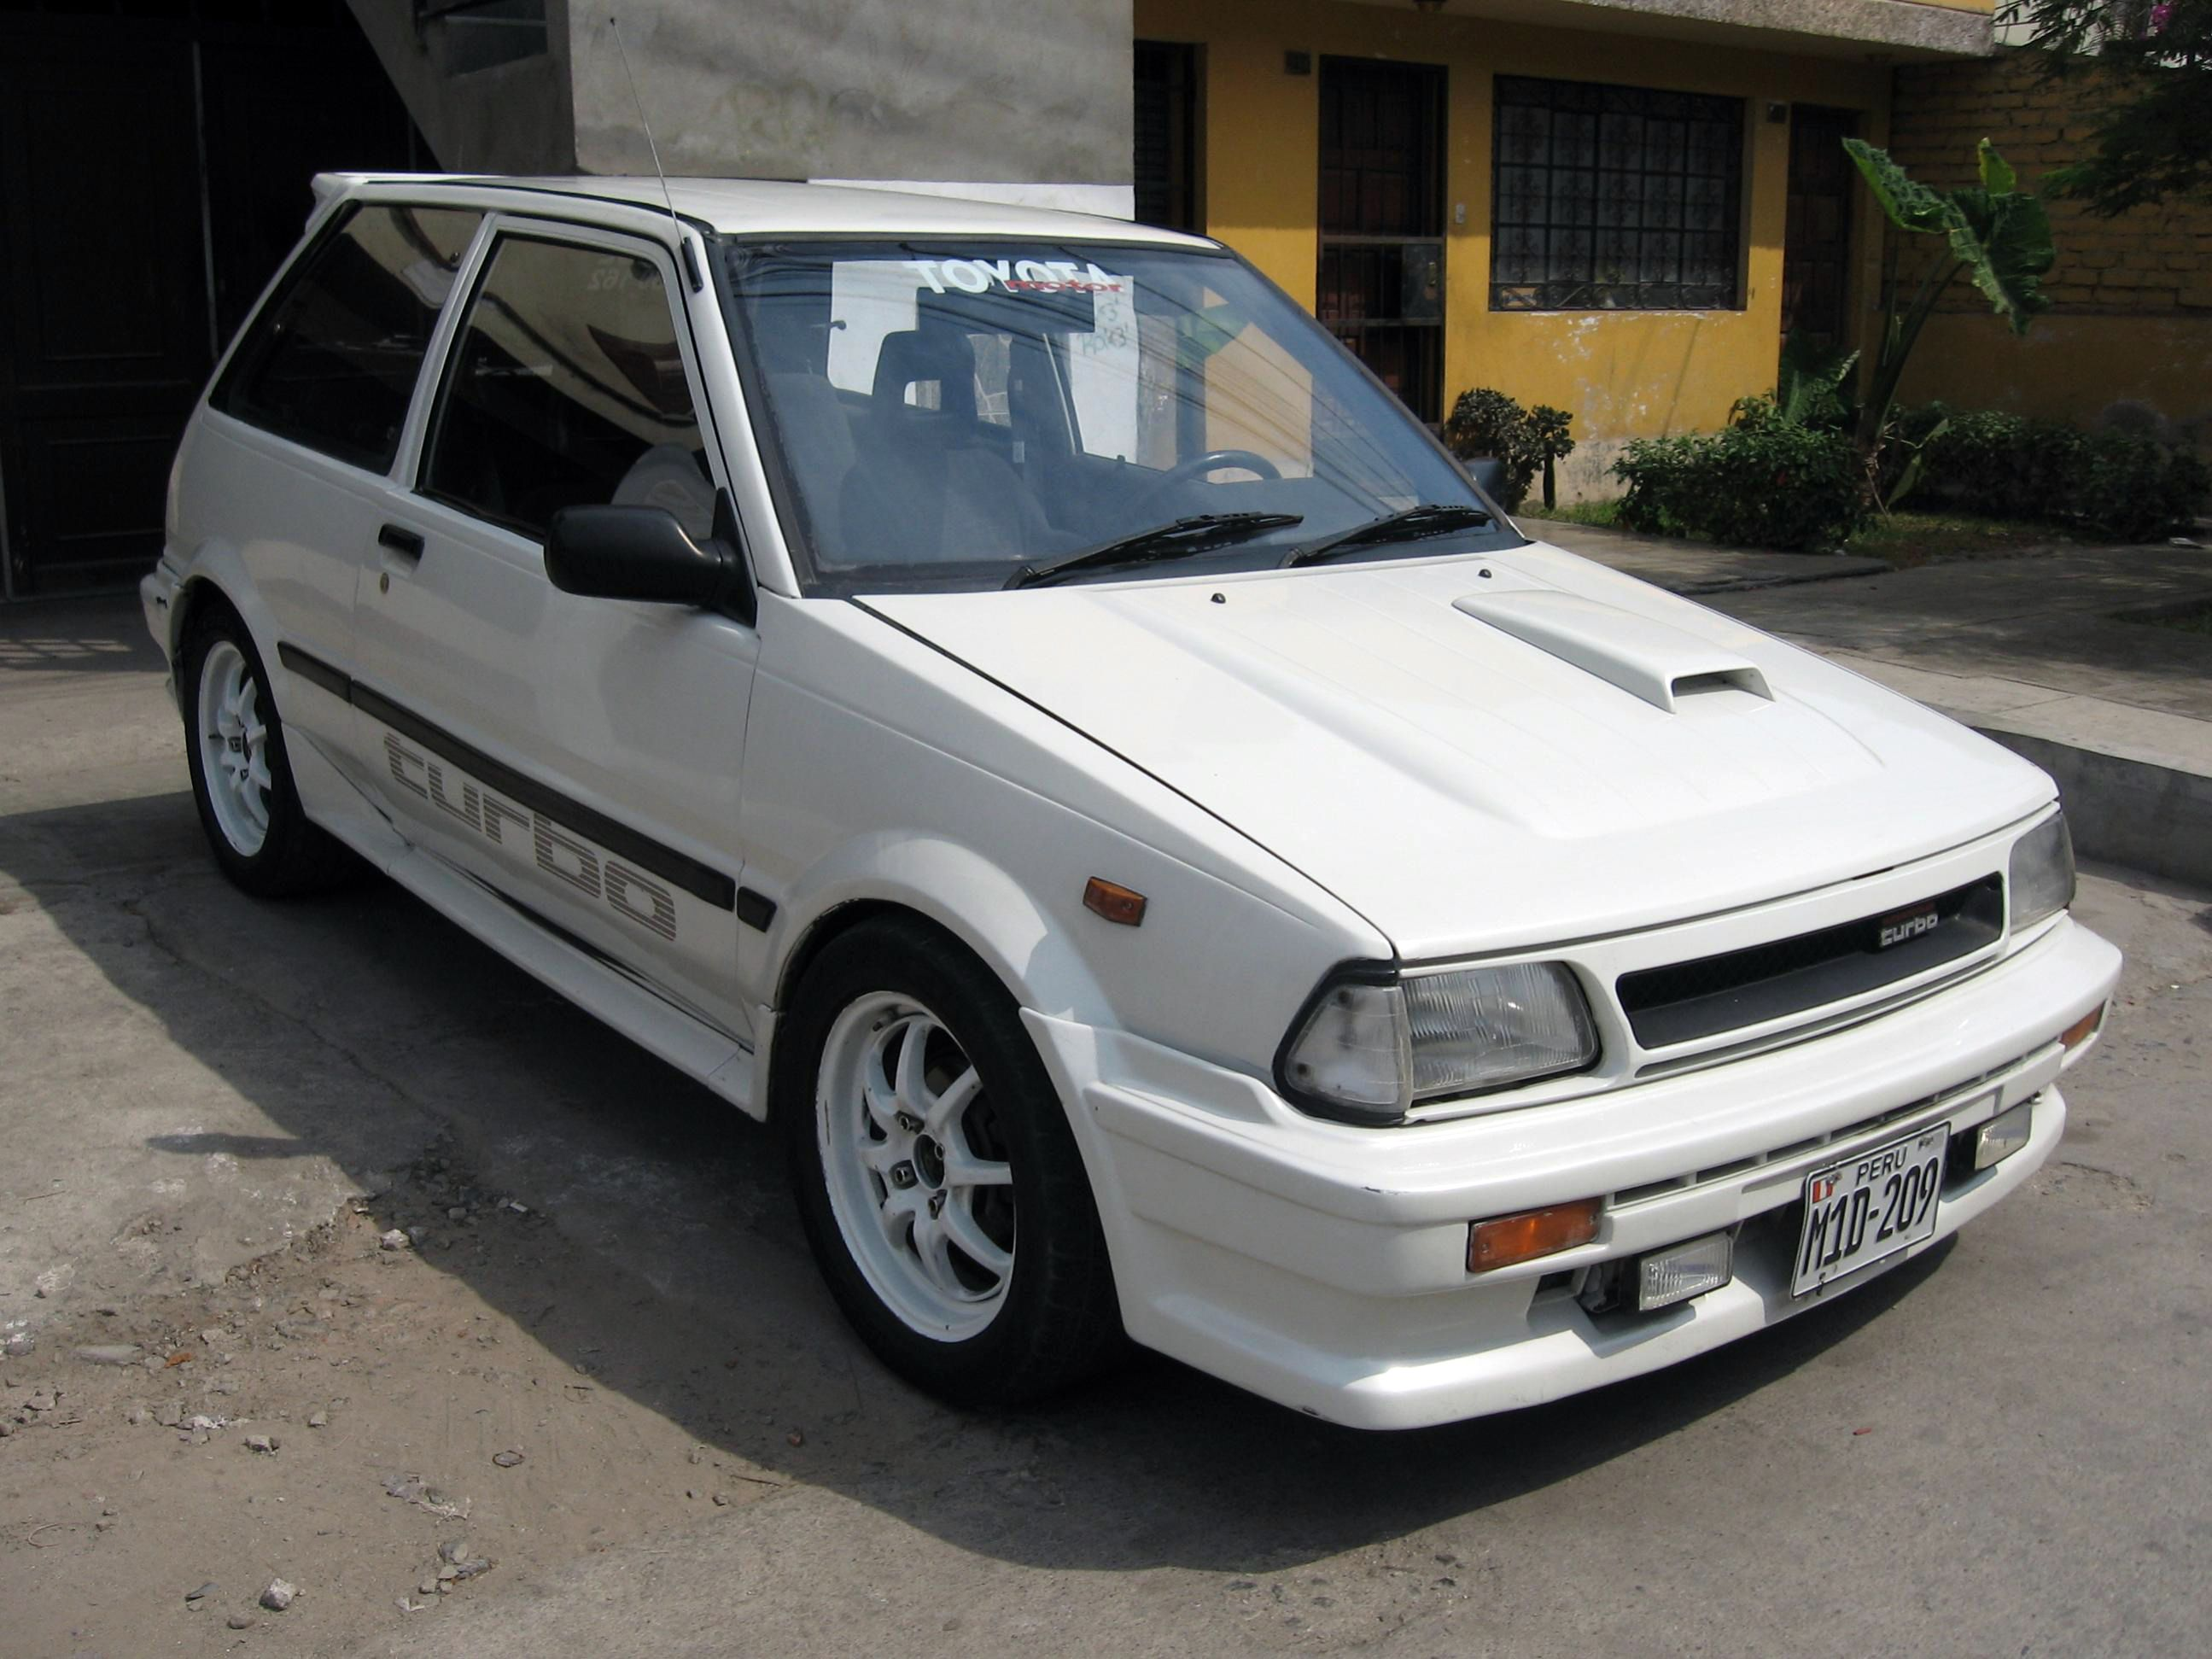 toyota starlet ep71 turbo r classic cars pinterest toyota starlet toyota and cars. Black Bedroom Furniture Sets. Home Design Ideas